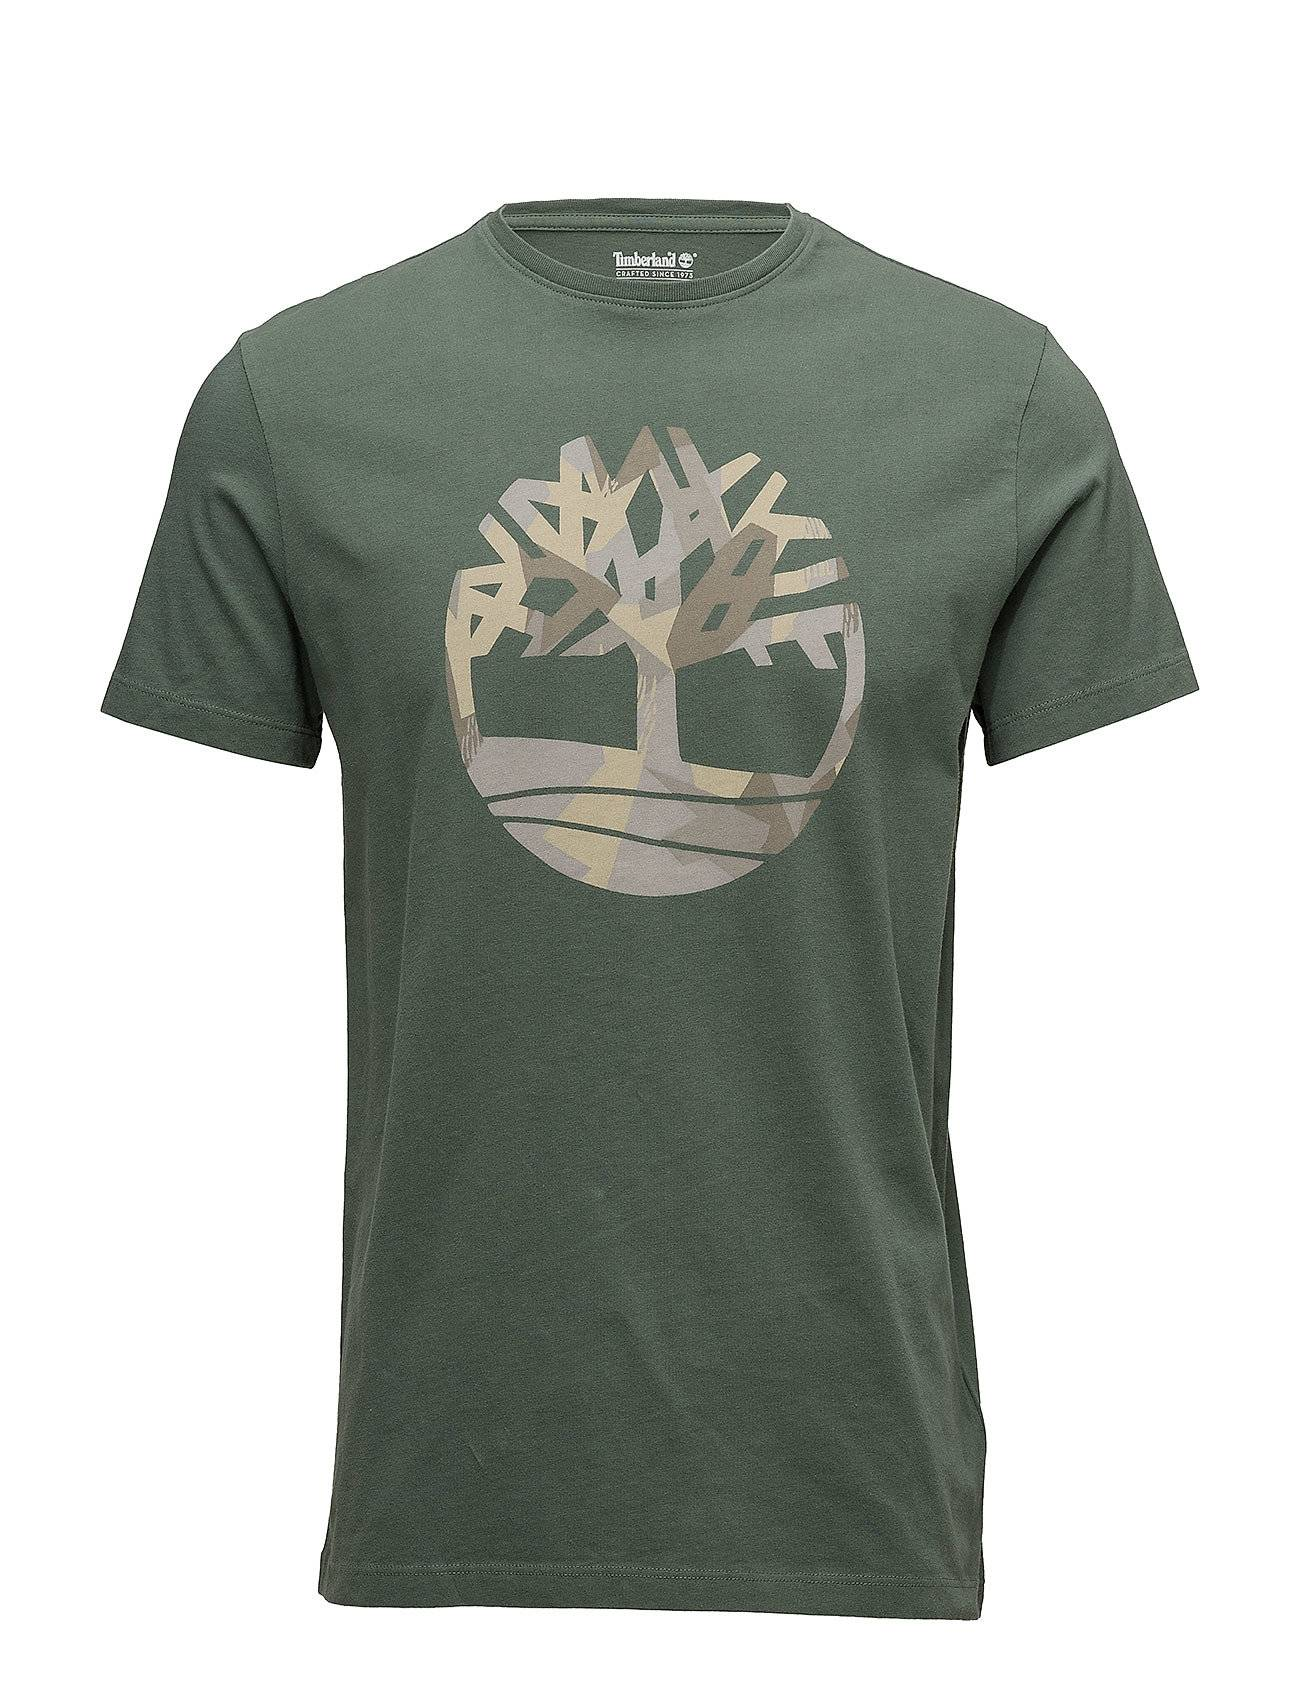 Timberland Ss Kennebec River Seasonal Pattern Brand Slim Tee (Tree & Li